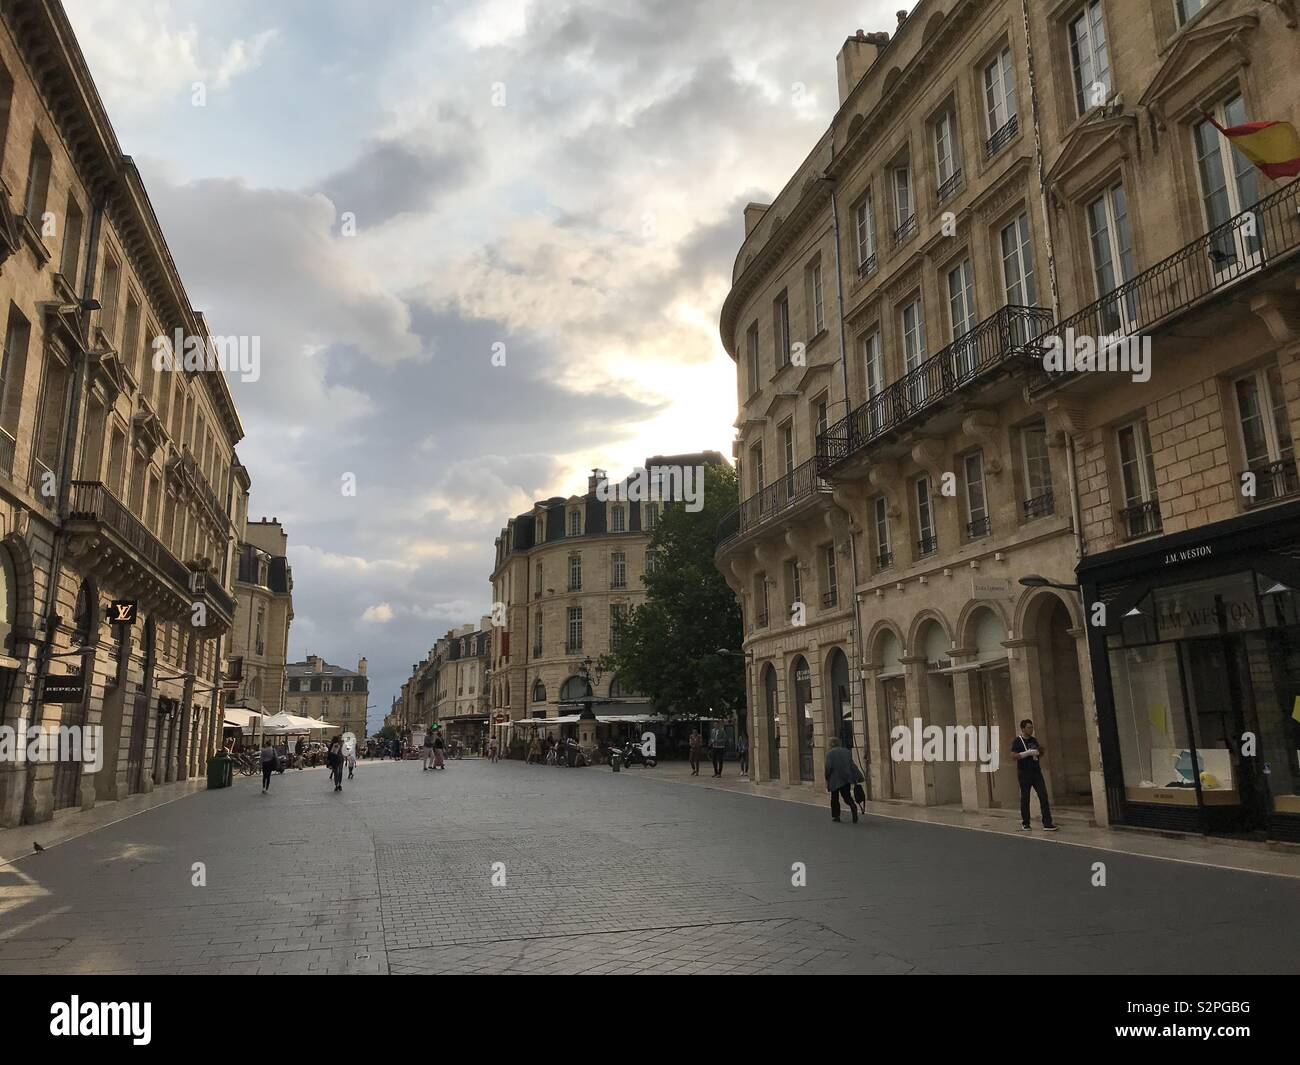 Colour photo of a street scene in Bordeaux - Stock Image